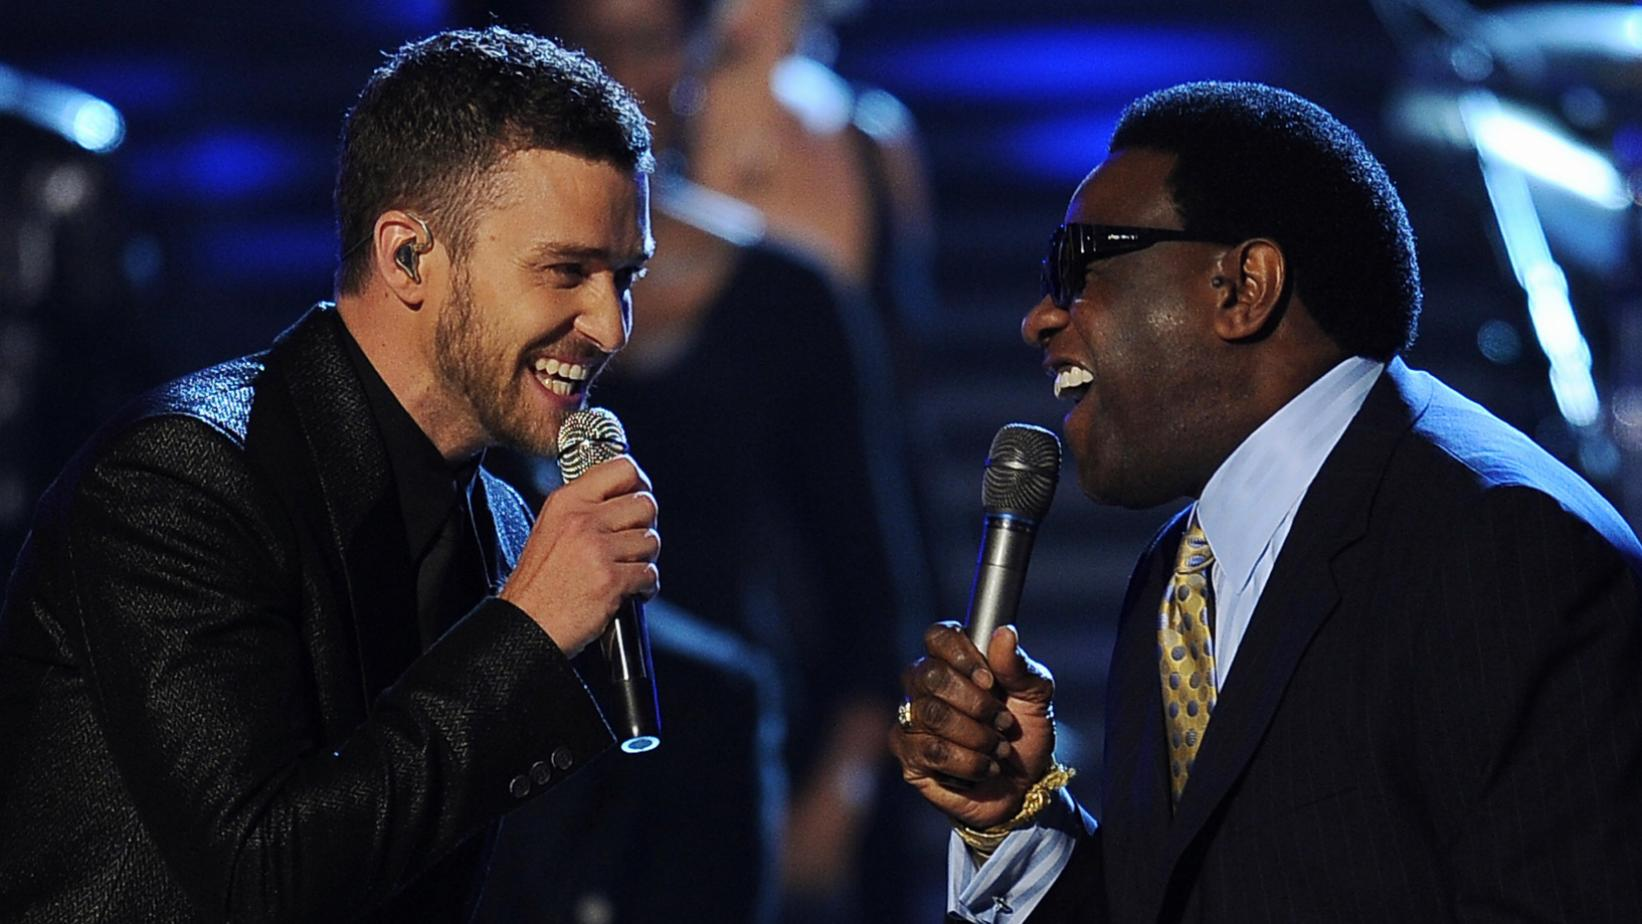 Justin Timberlake and Al Green at the 51st GRAMMYs in 2009